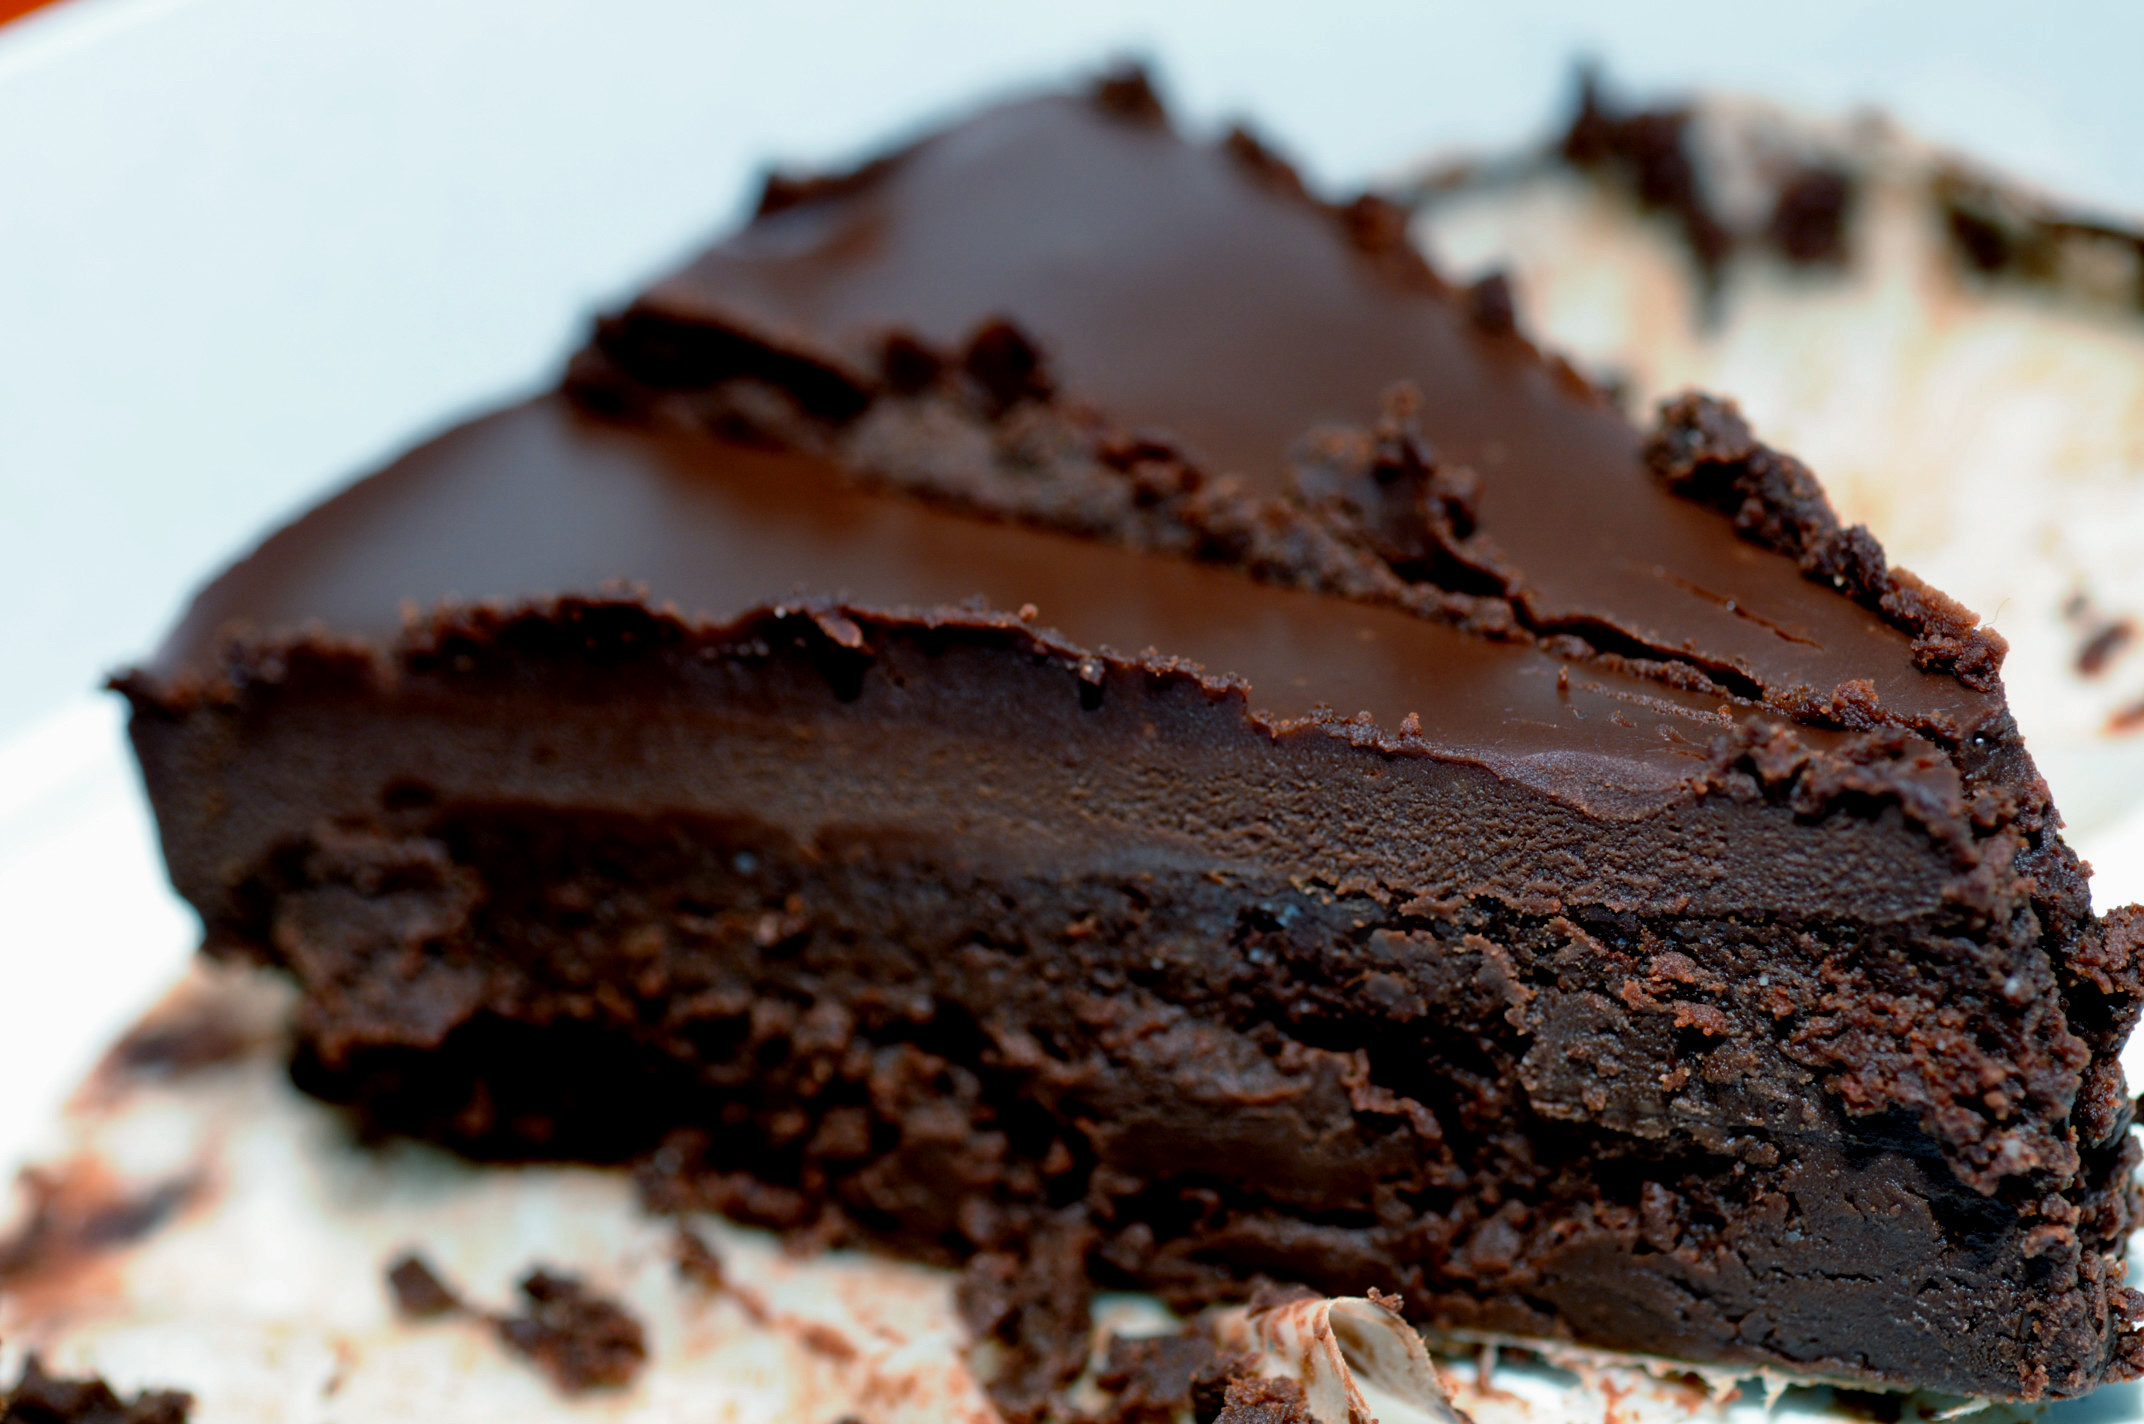 40+ Very Delicious And Yummy Chocolate Cake Images For Cake Lovers